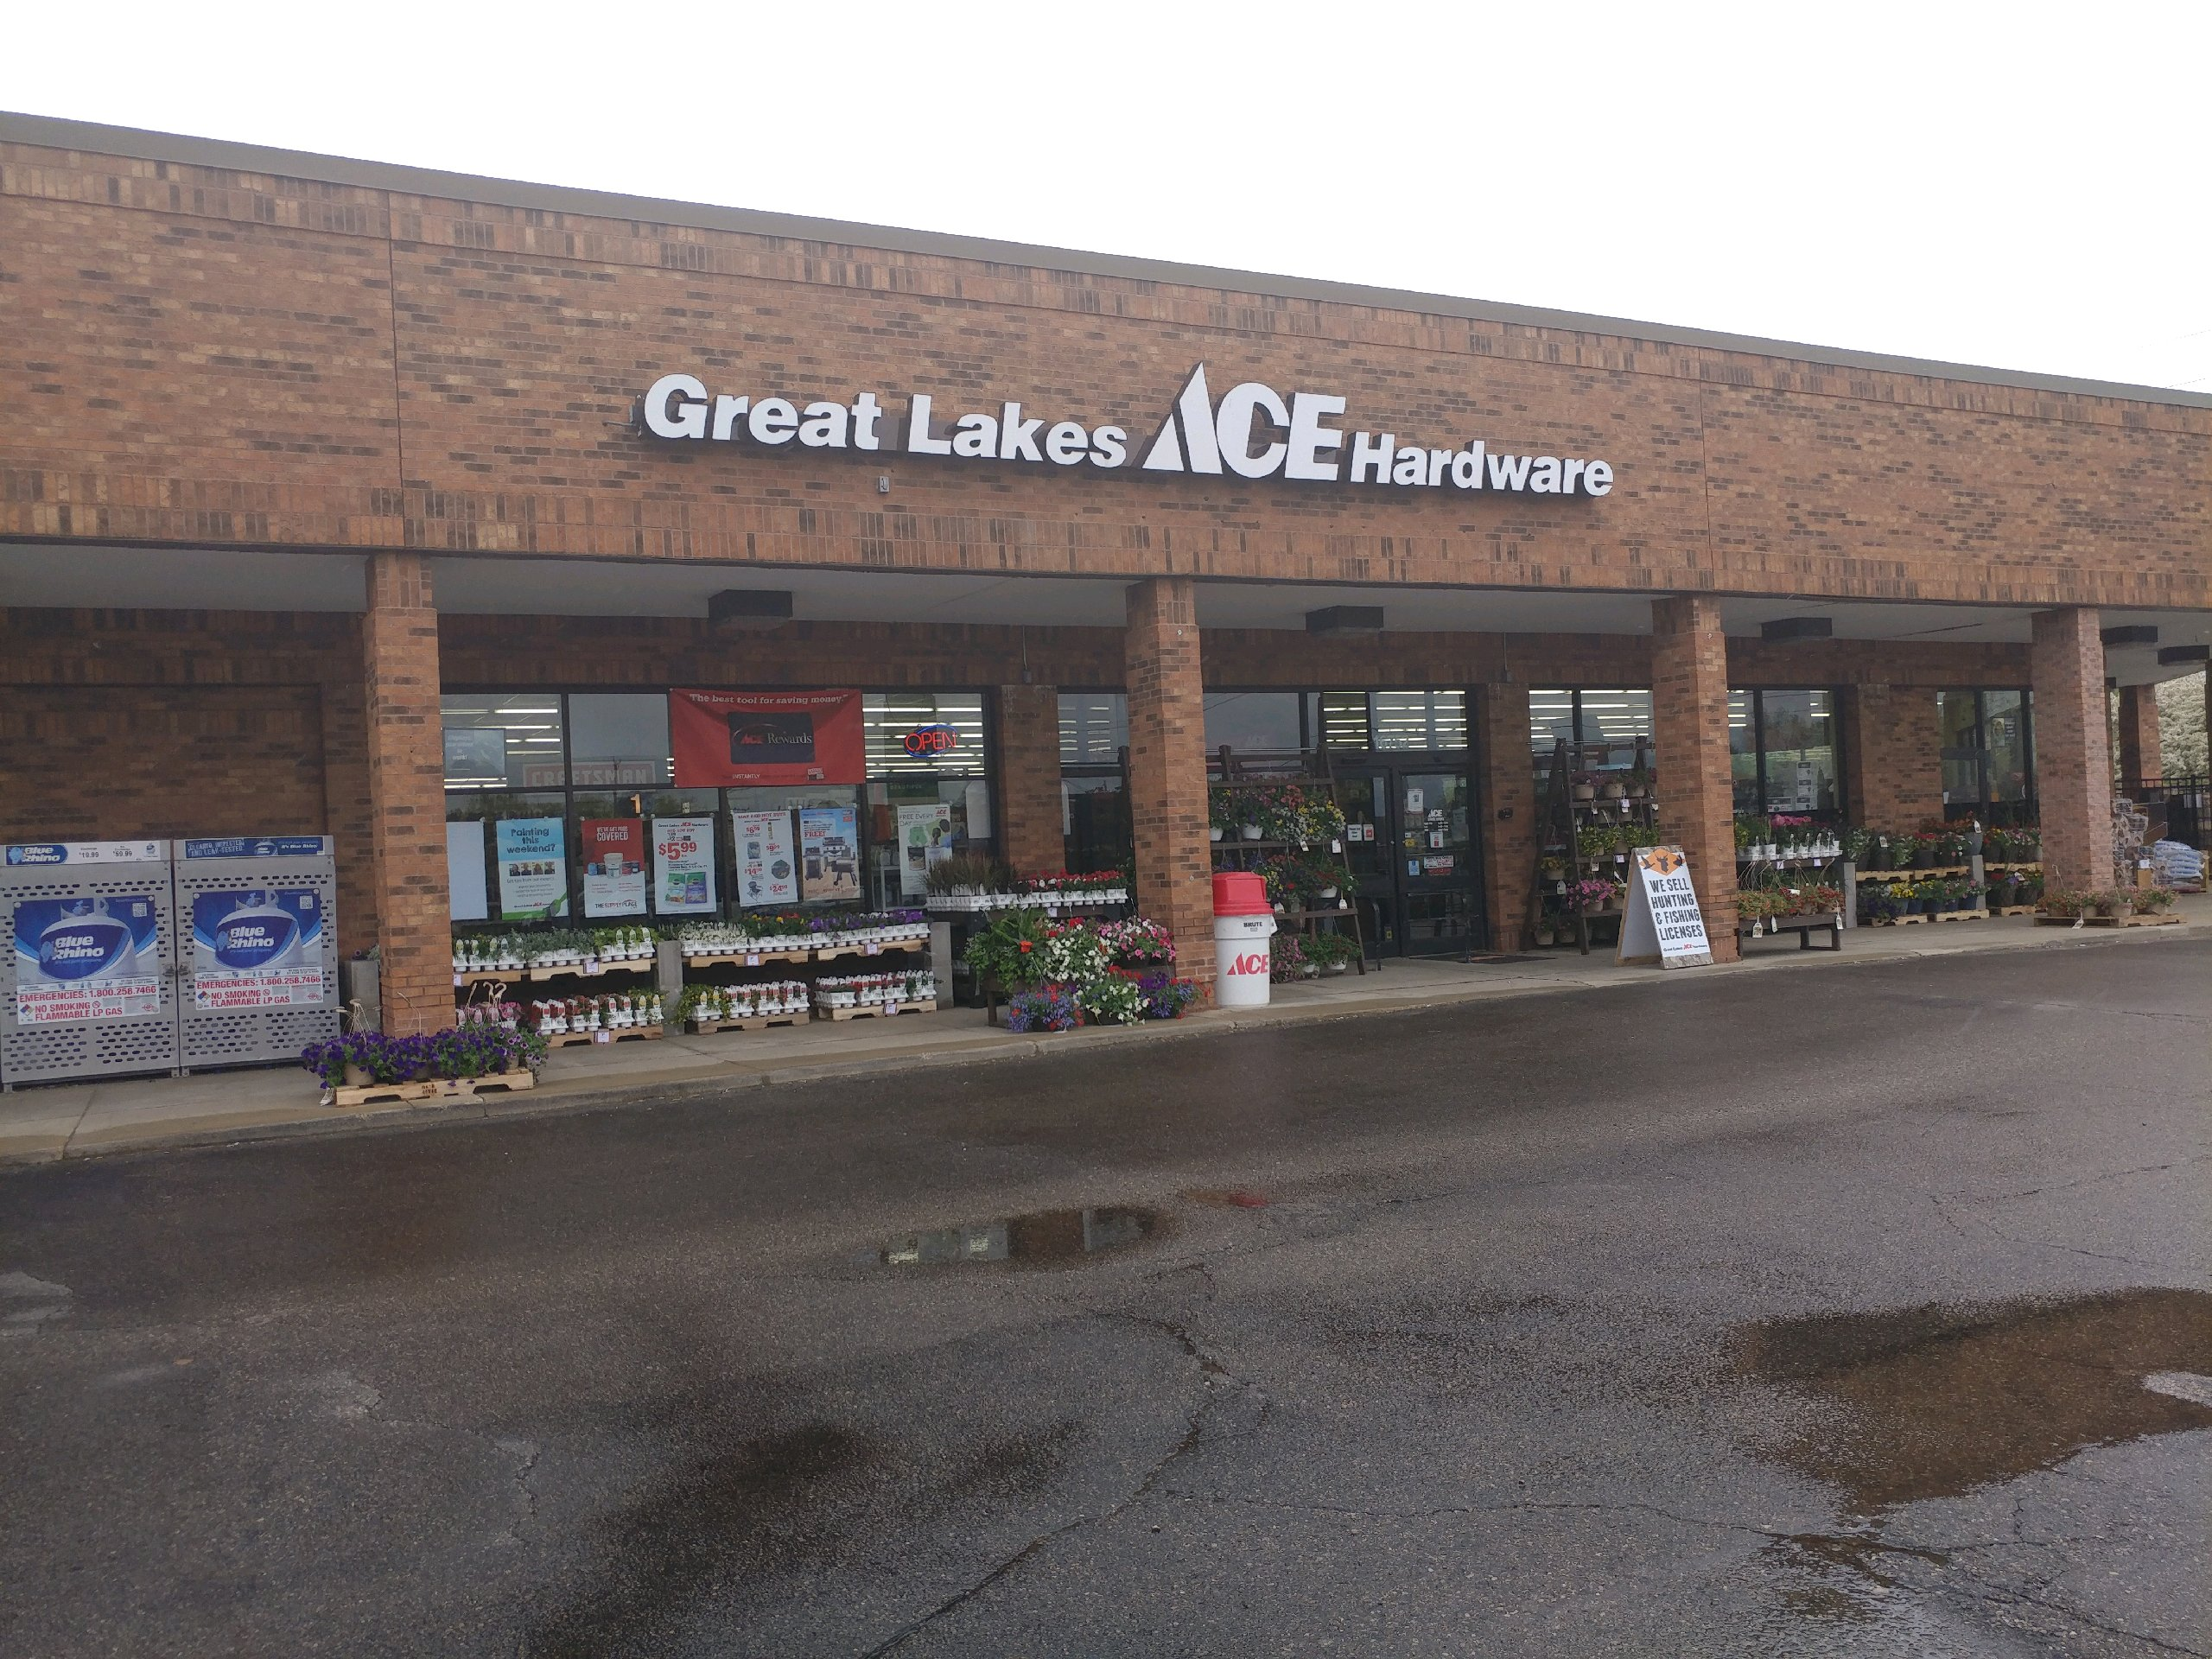 Macomb - Great Lakes Ace Hardware Store